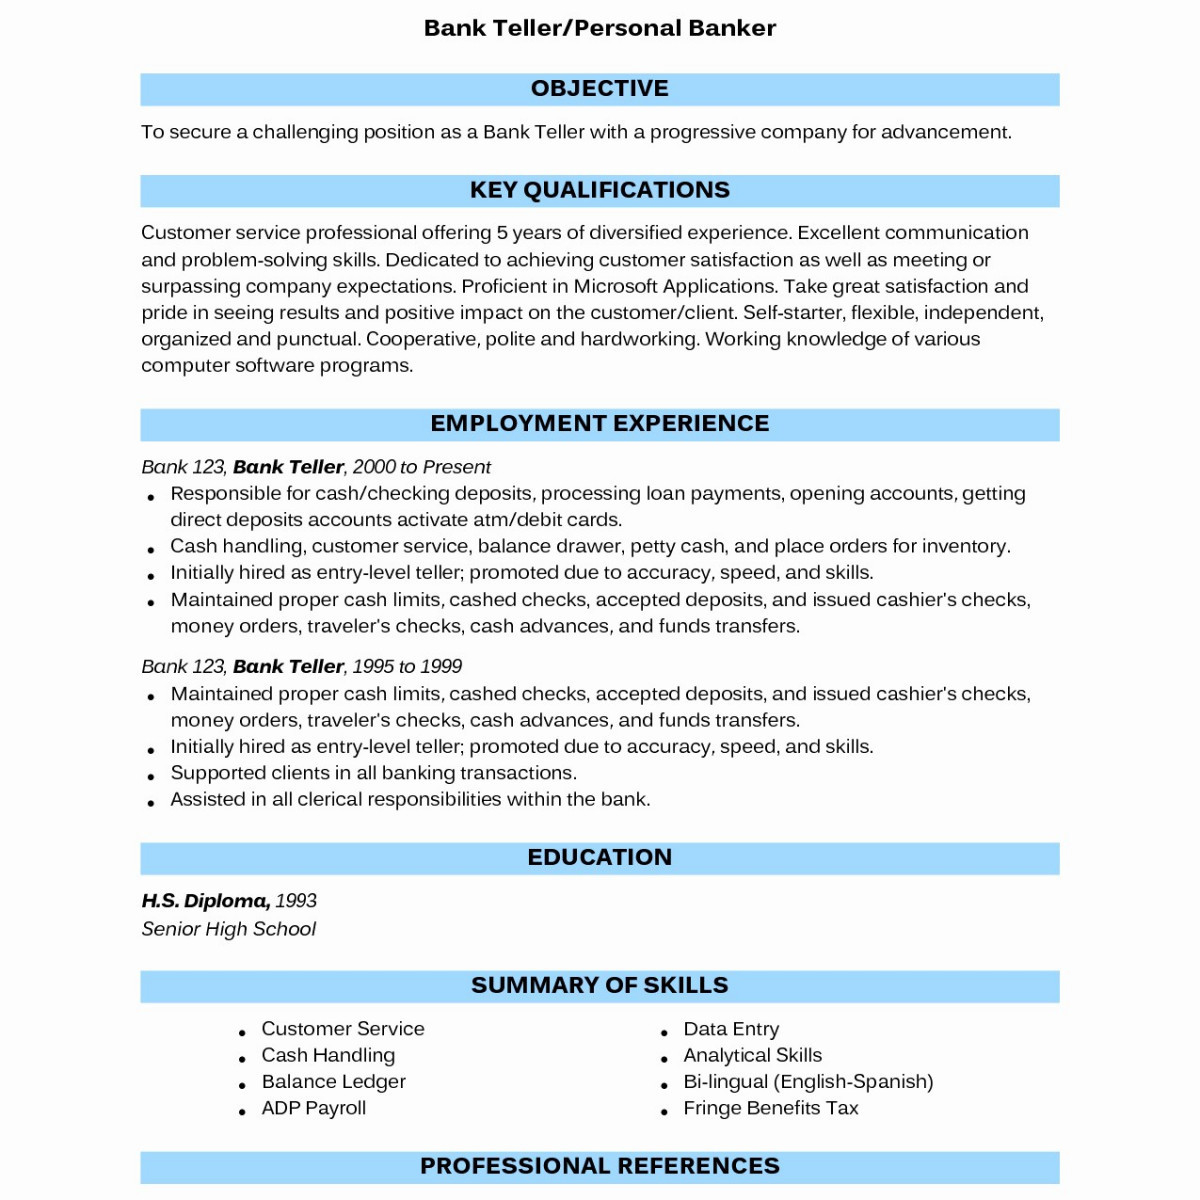 Personal Banker Resume - Correct Spelling Resume New Fresh Resumes for A Bank Teller